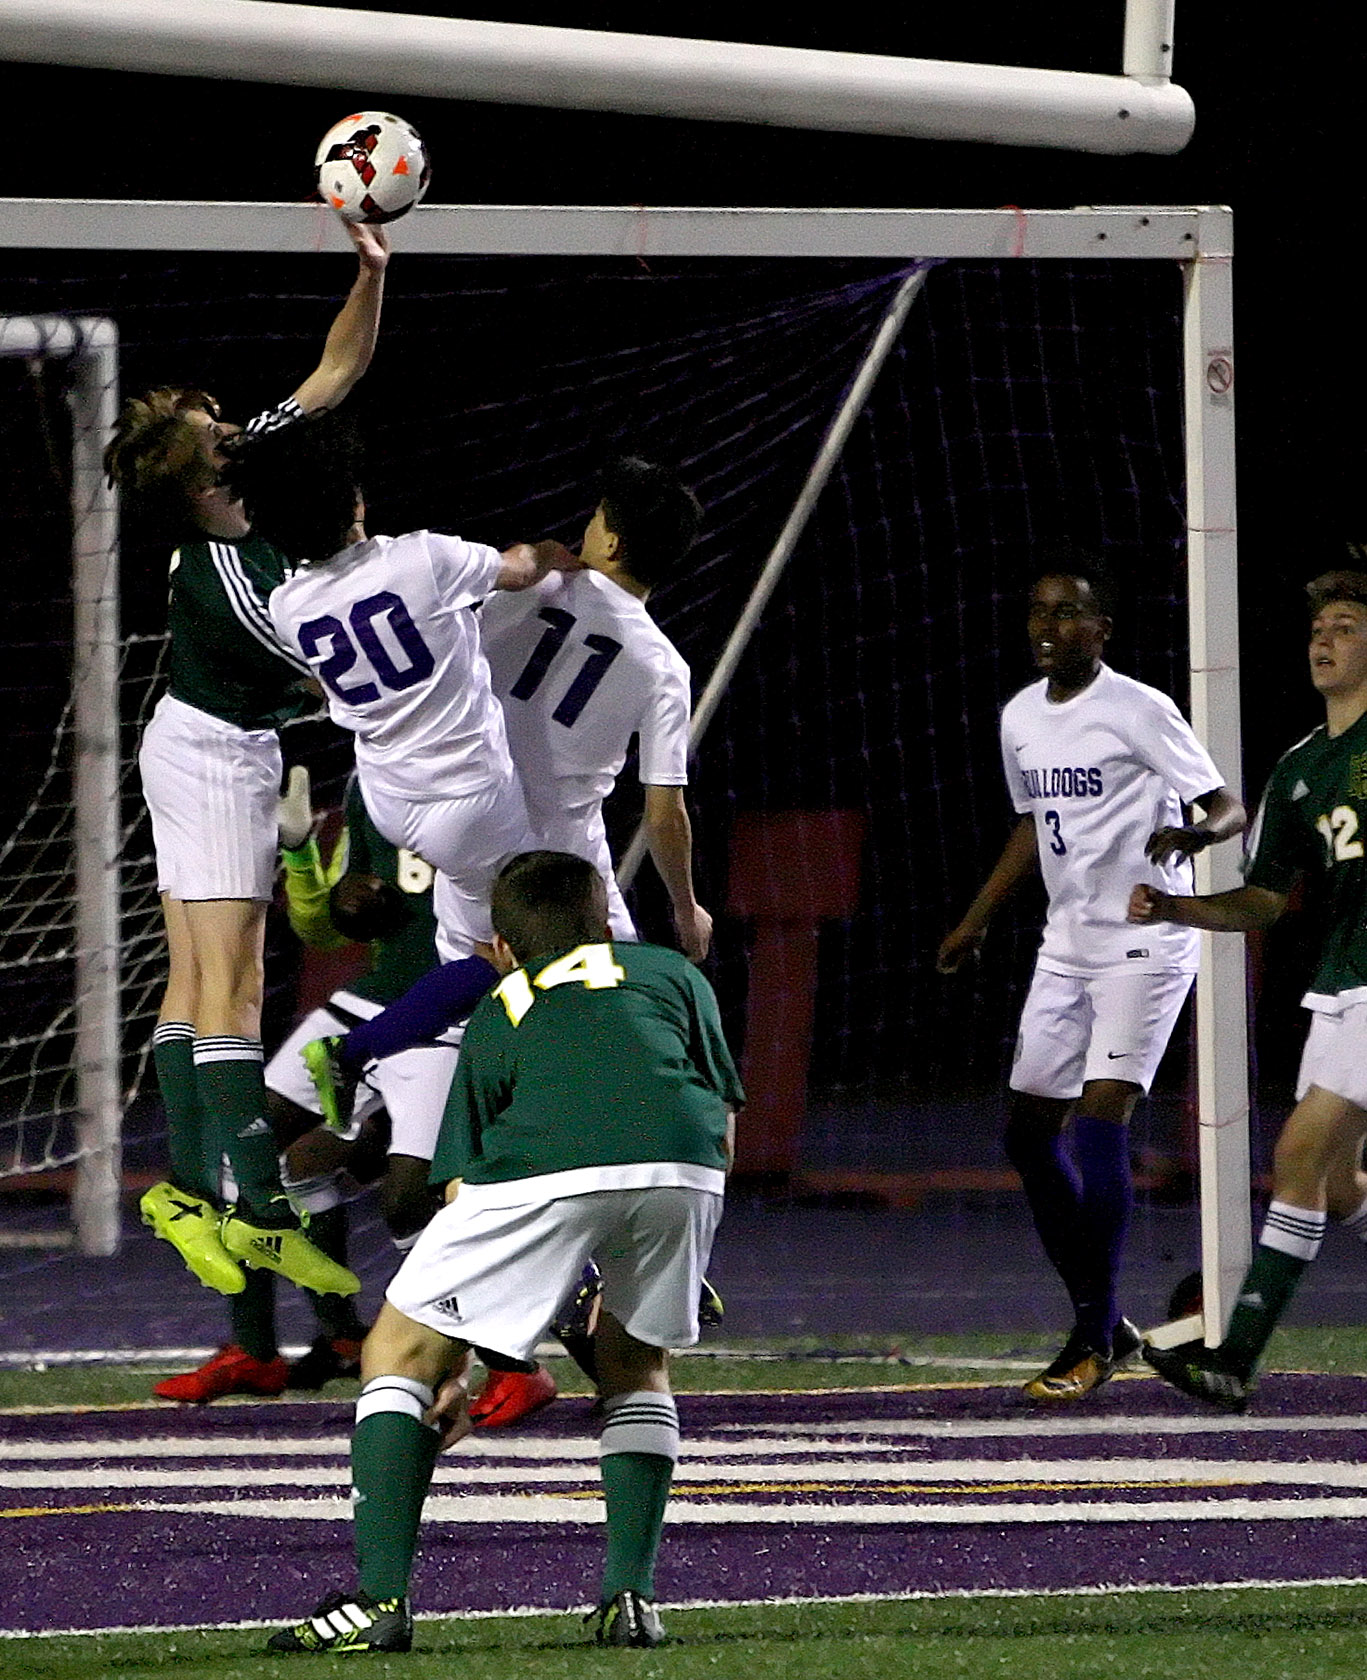 Alex Lyro of Foss blocks the shot at the goal. Wait, this isn't basketball and he isn't the goalie. PENALTY!